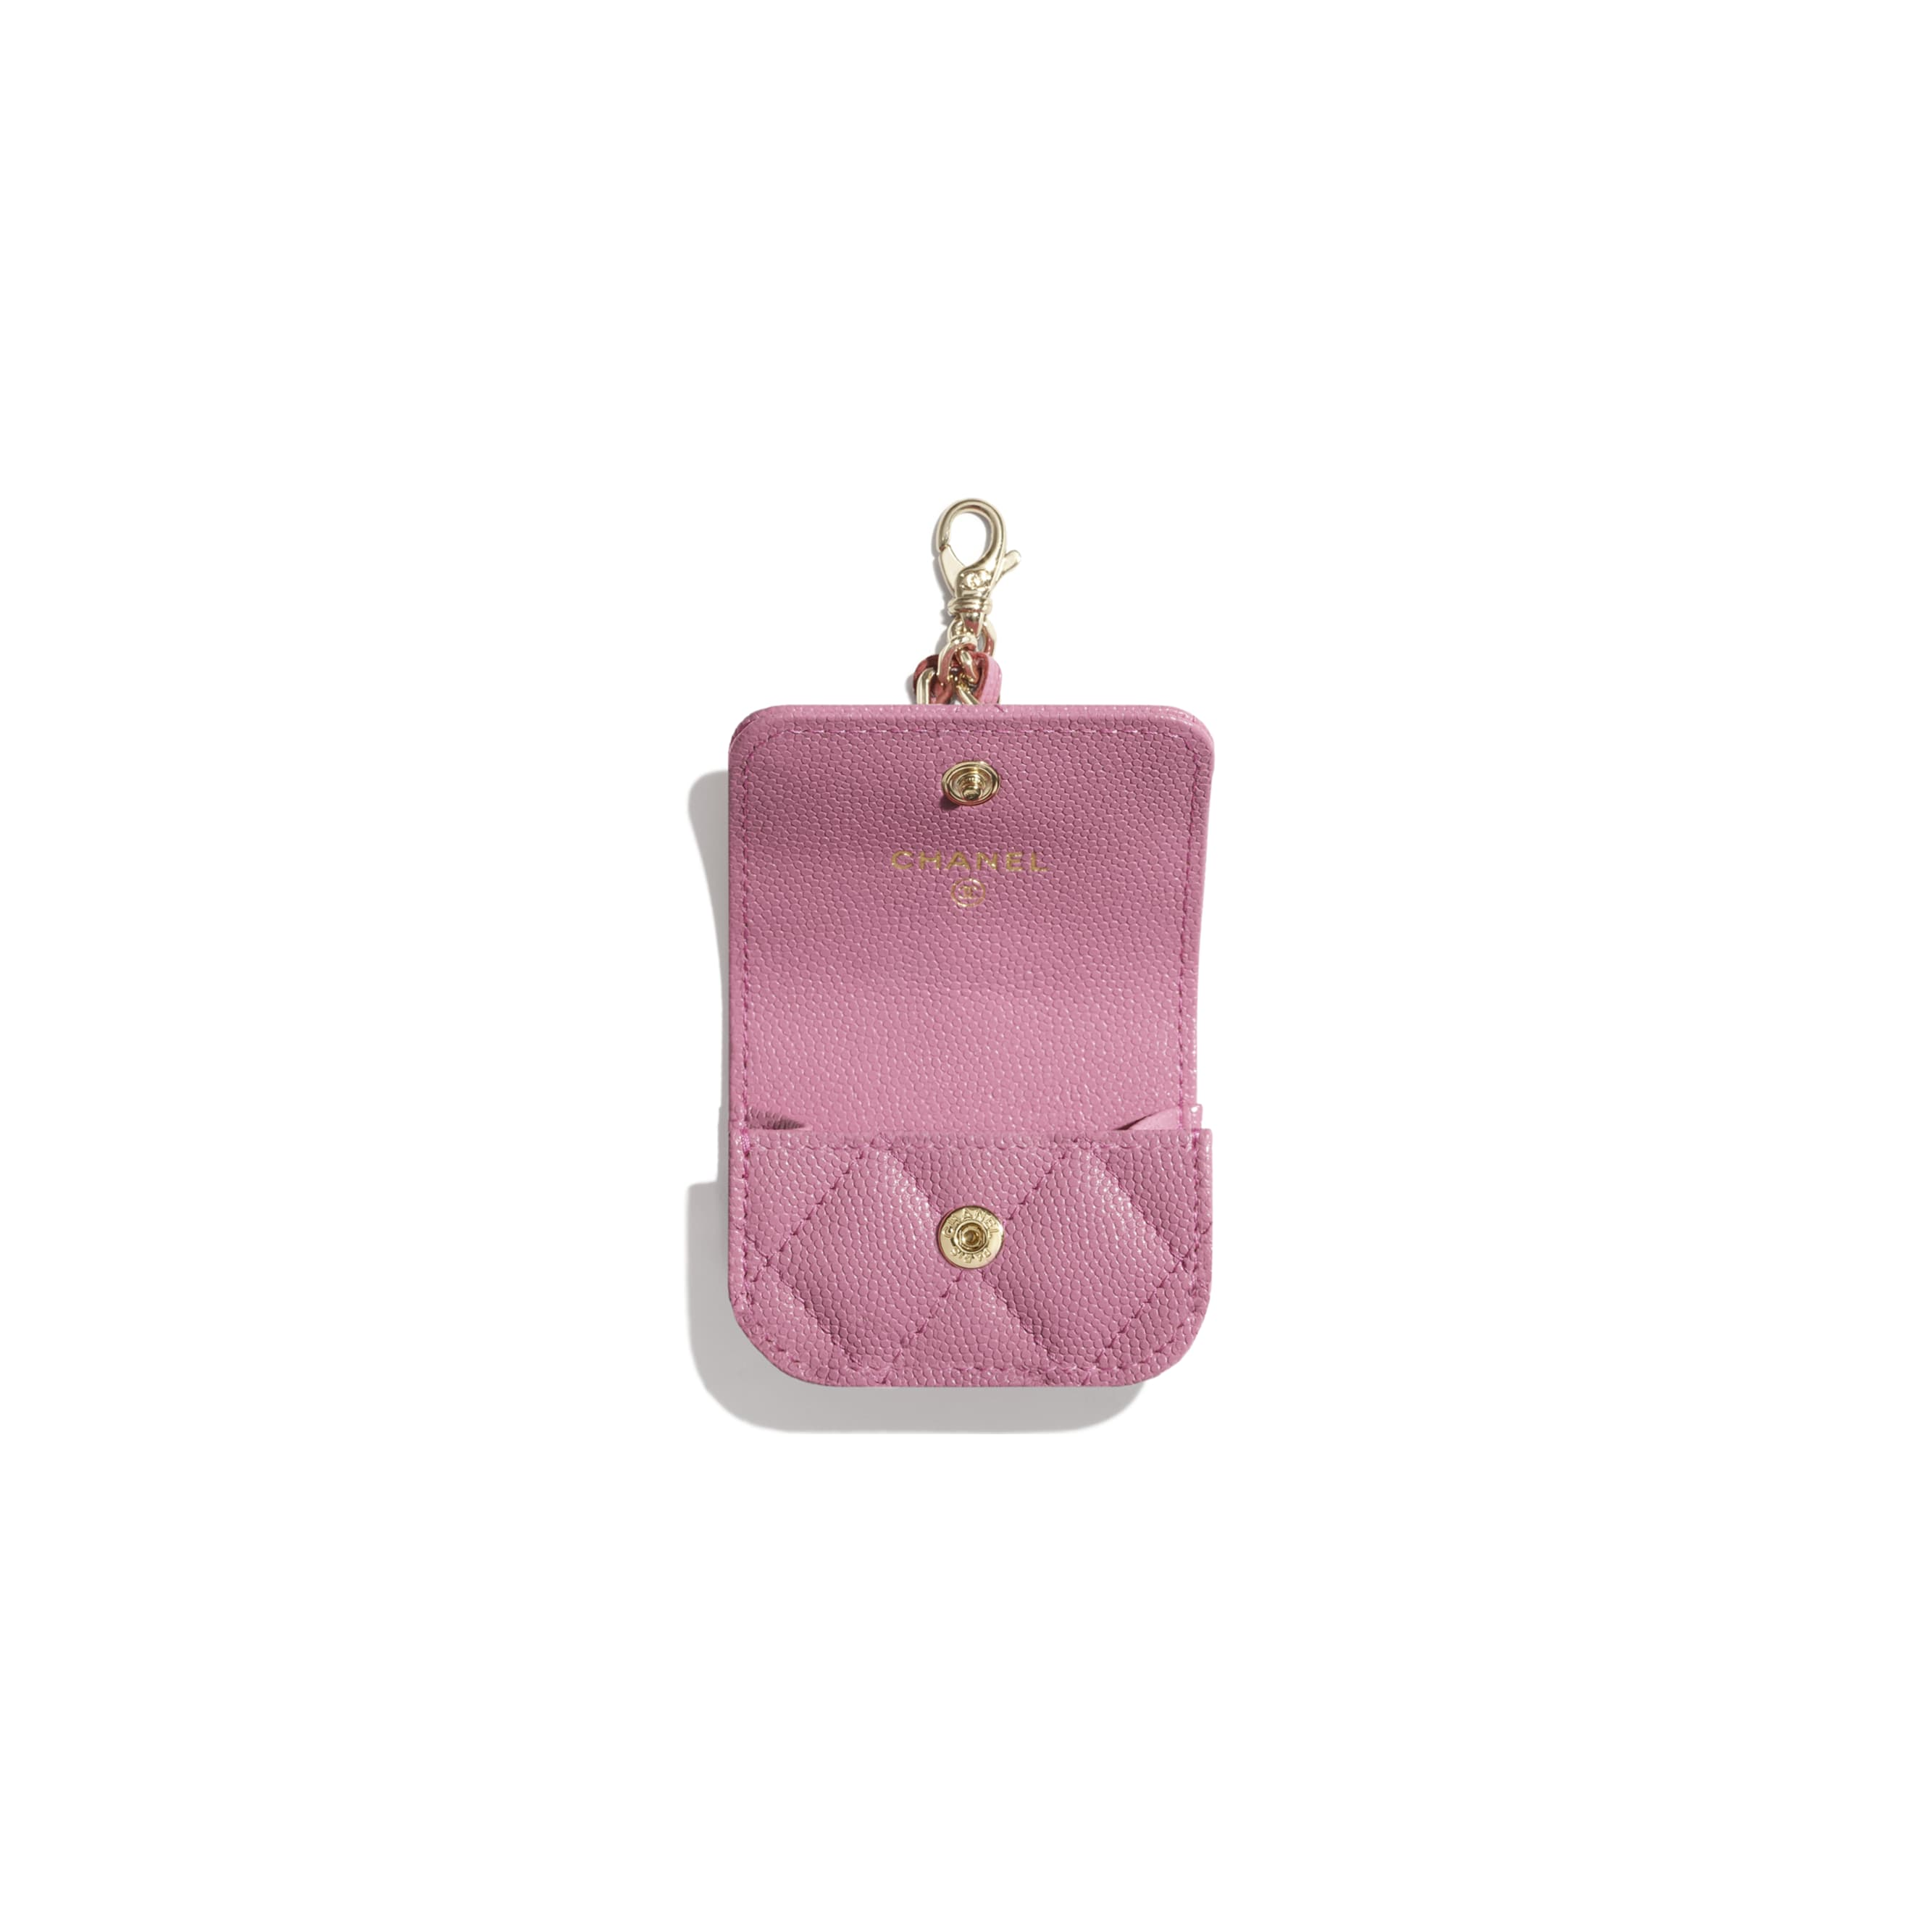 AirPods Pro Case - Pink - Grained Calfskin & Laquered Gold-Tone Metal - CHANEL - Alternative view - see standard sized version